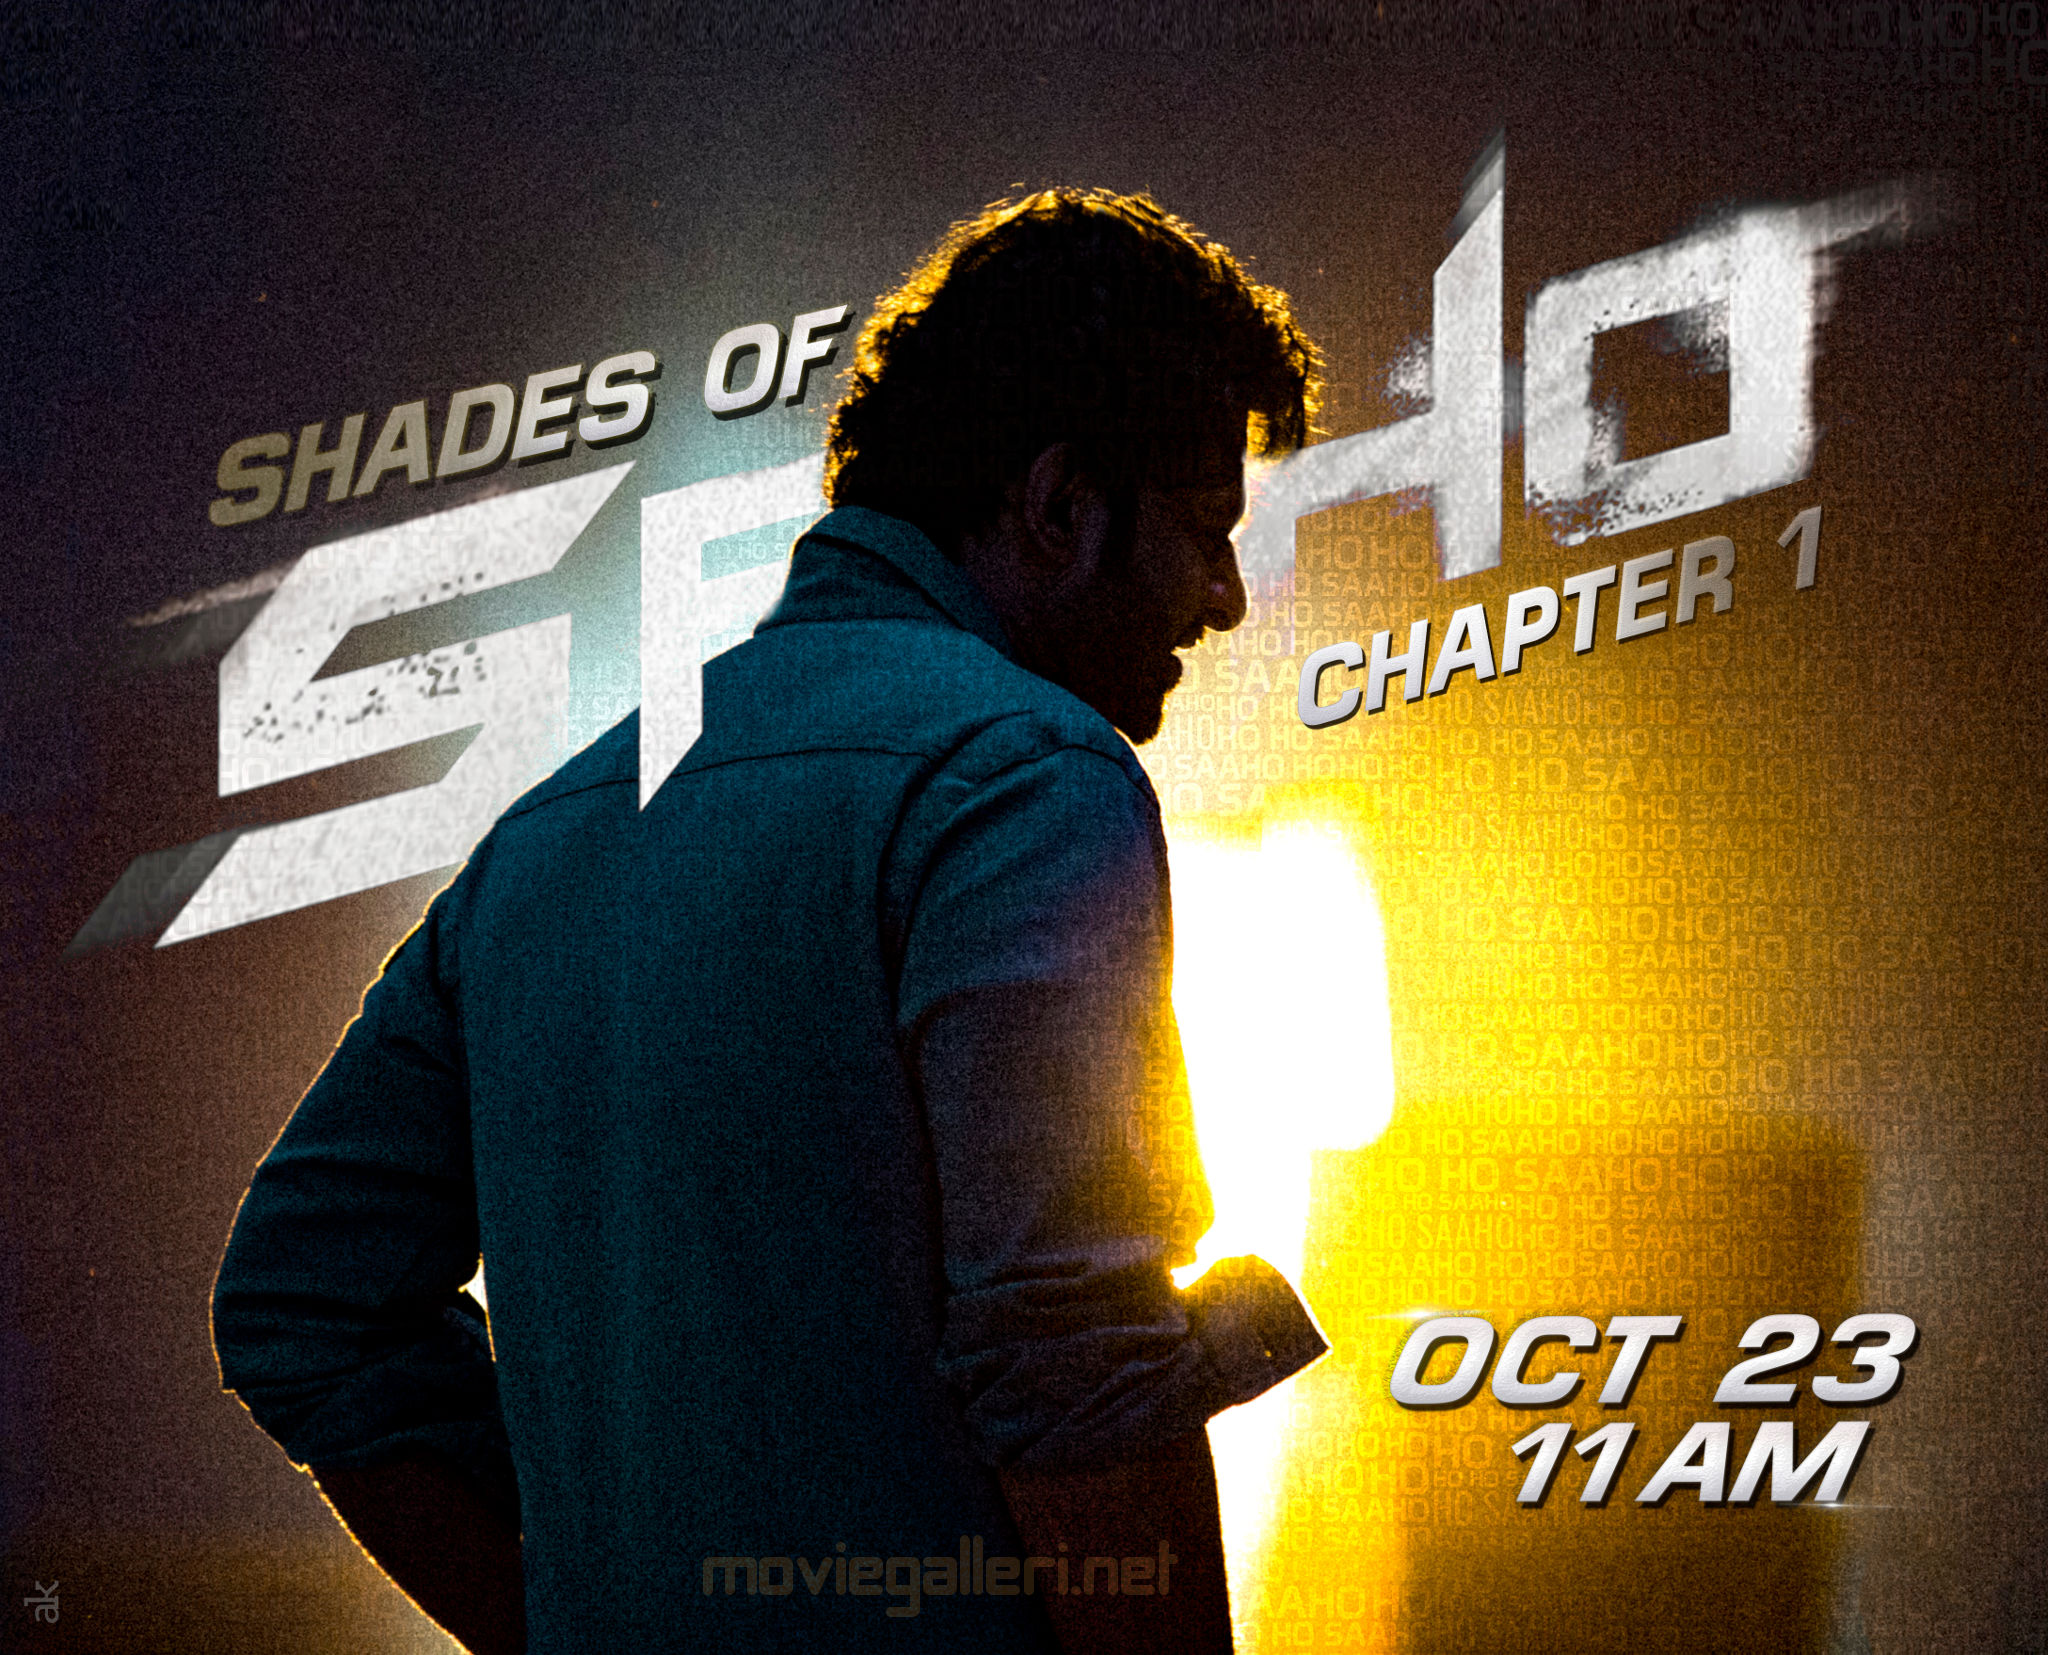 Prabhas's Shades of Saaho footage for his Birthday Treat to Fans